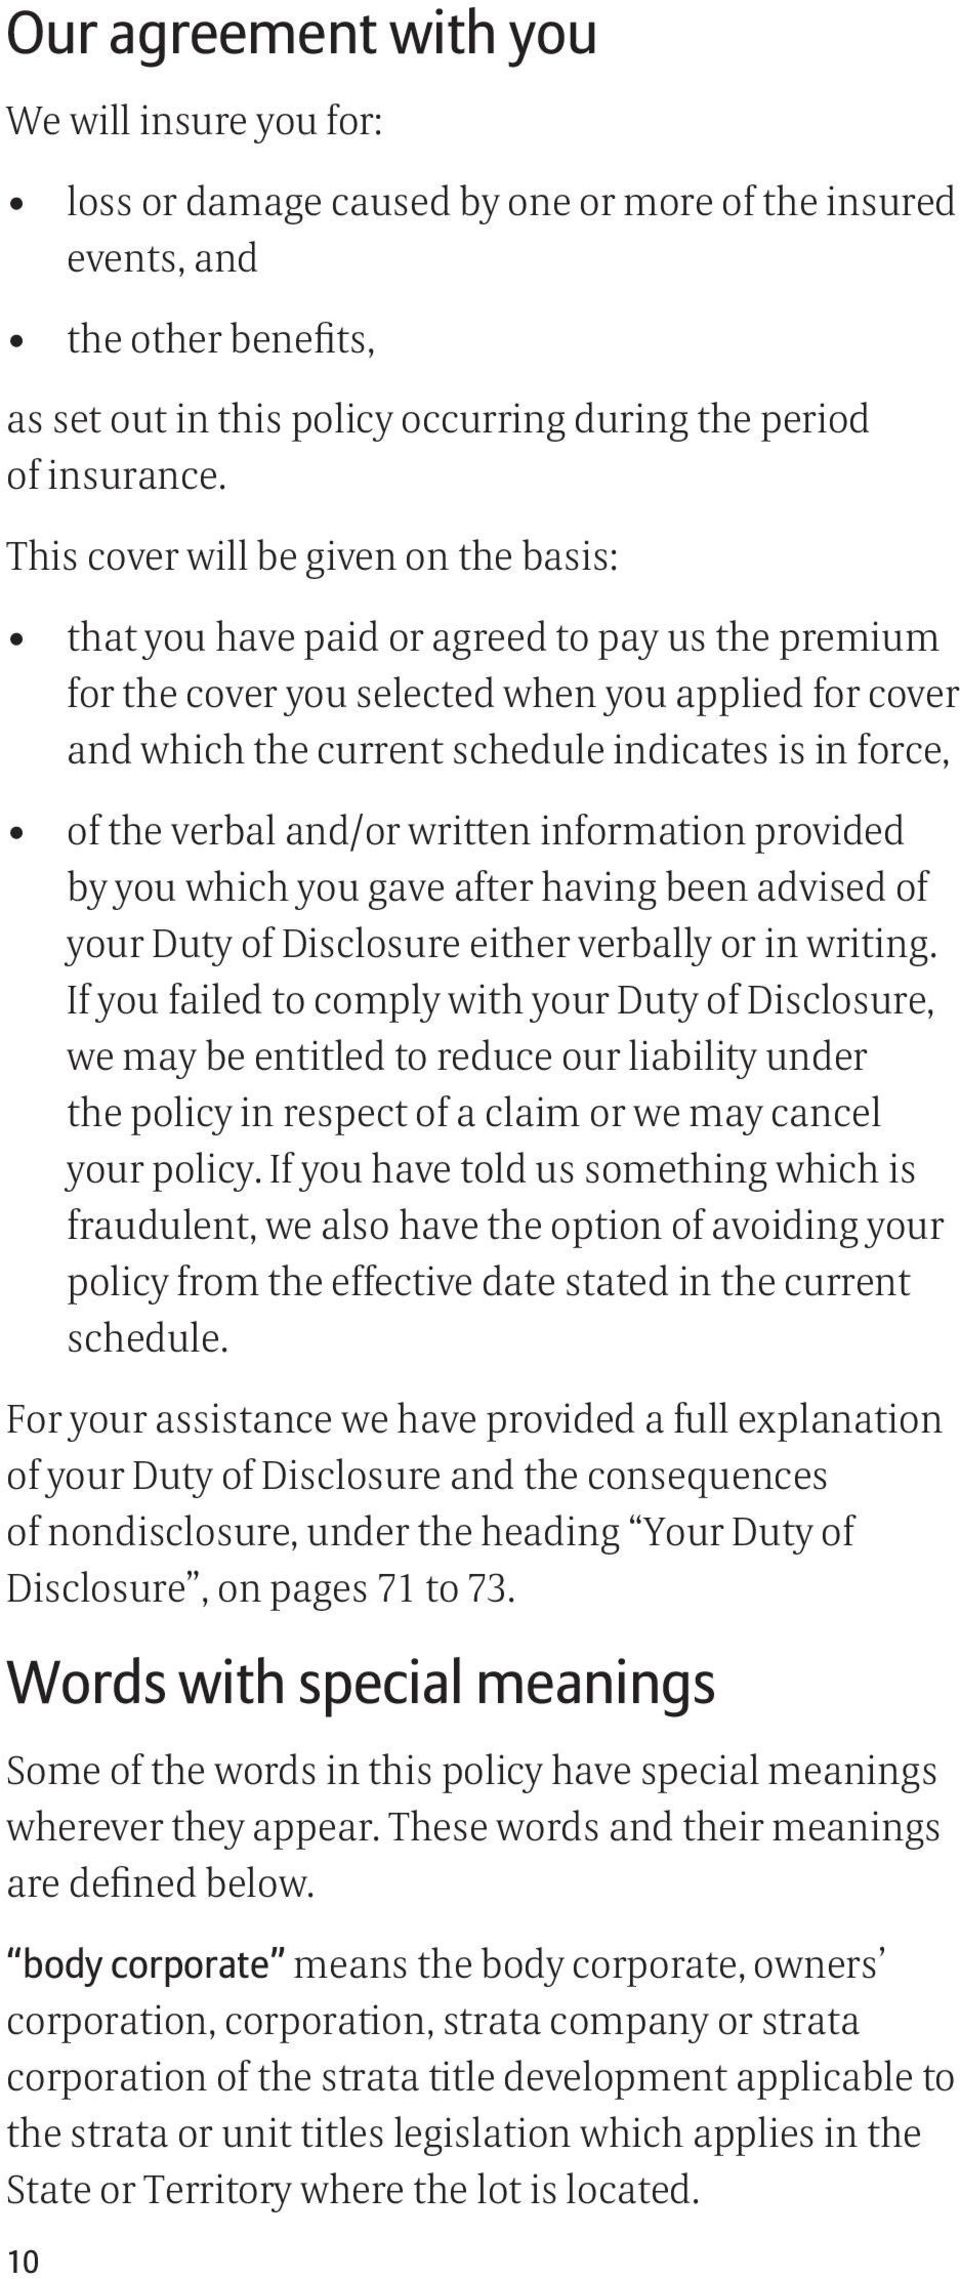 of the verbal and/or written information provided by you which you gave after having been advised of your Duty of Disclosure either verbally or in writing.